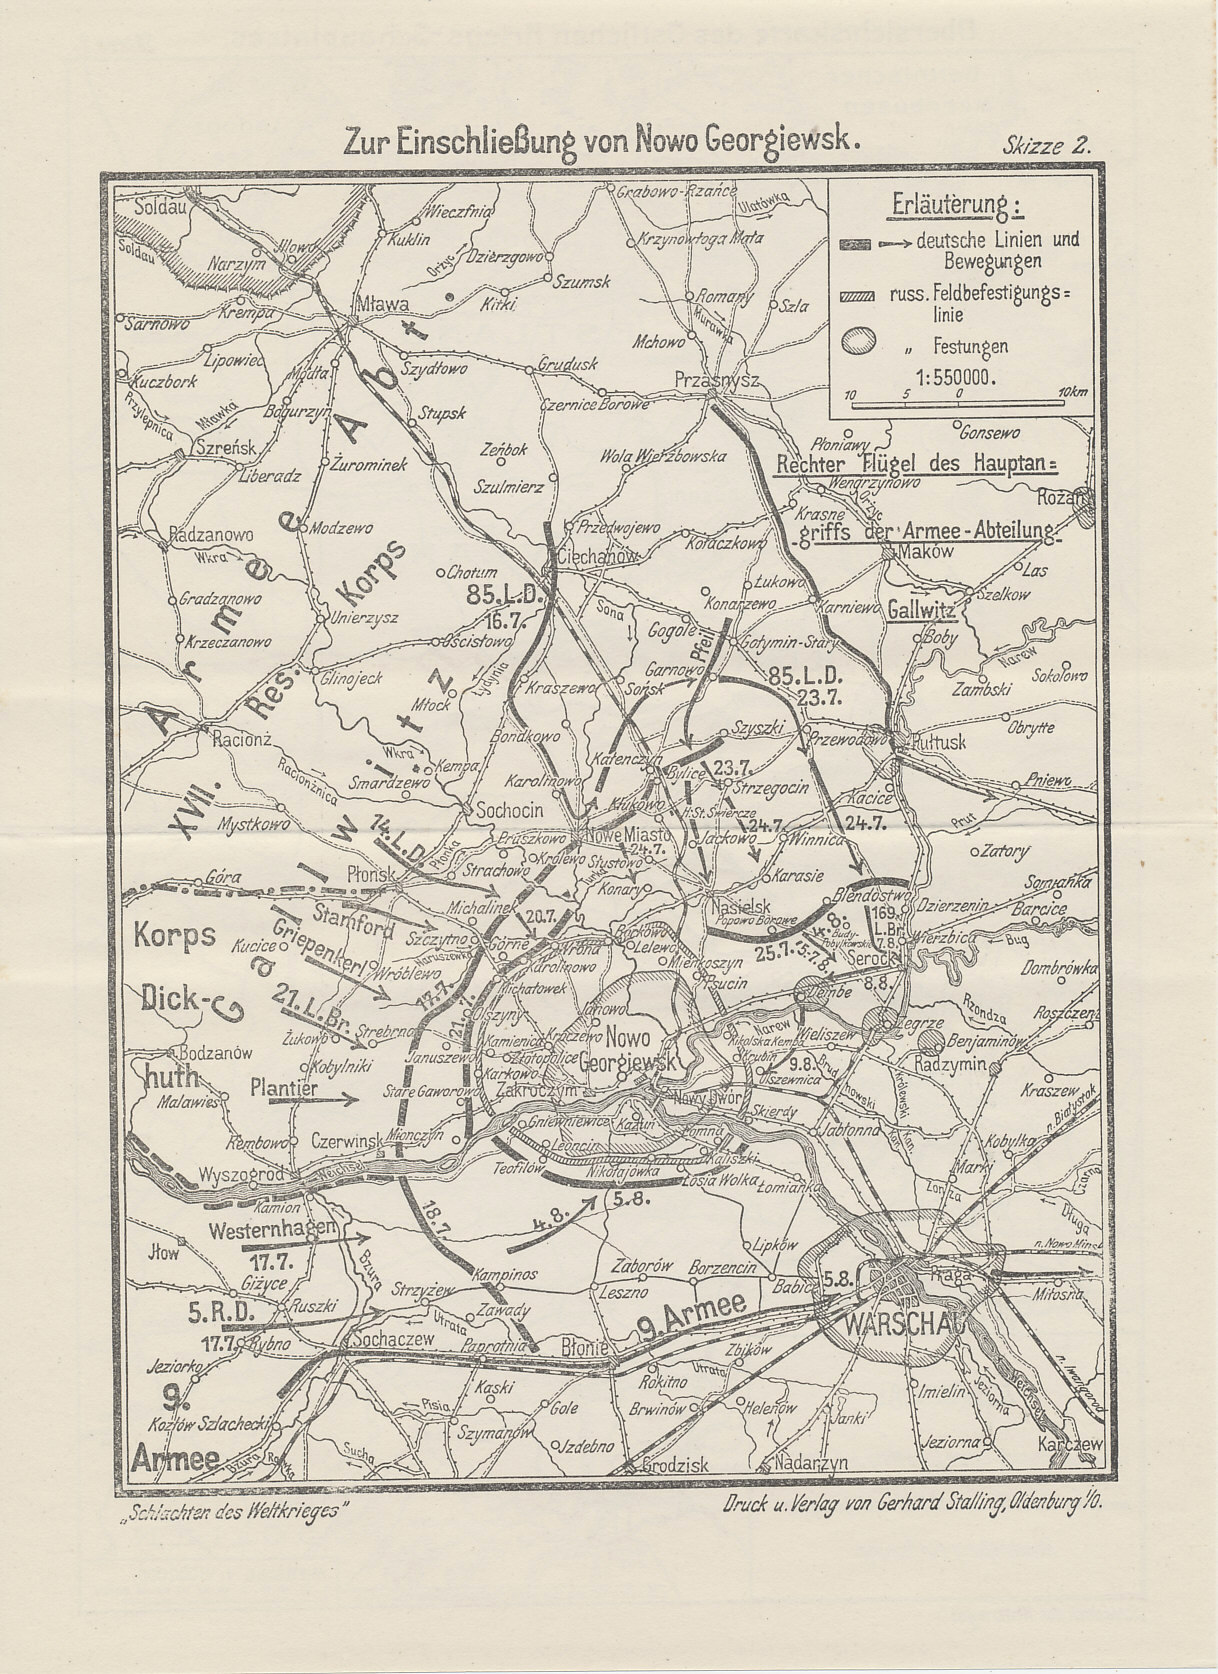 Map of the the Warsaw sector with the Russian Fortress of Novo Georgievsk, August, 1915 from The Capture of Novo Georgievsk, Volume 8 of the Reichsarchive history Battles of the World War.